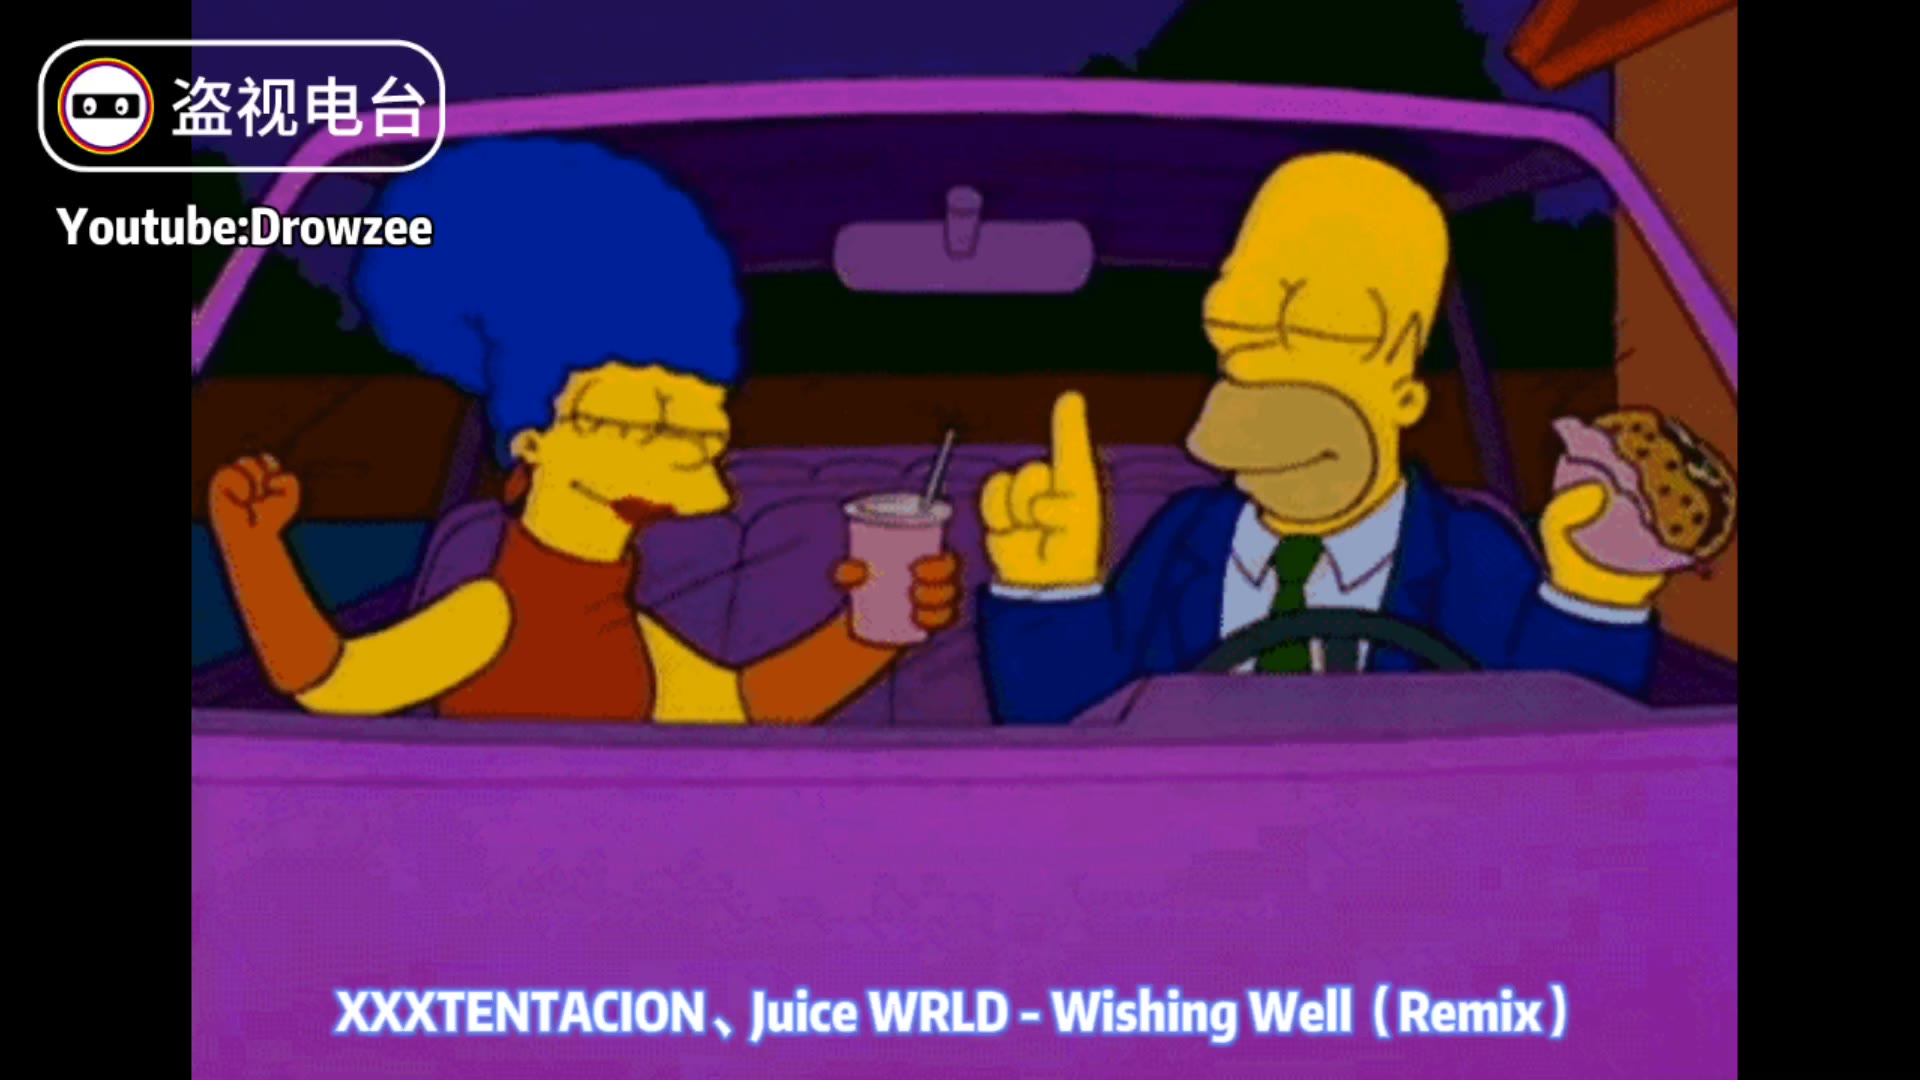 嘻哈音乐 XXXTENTACION、Juice WRLD - Wishing Well (REMIX